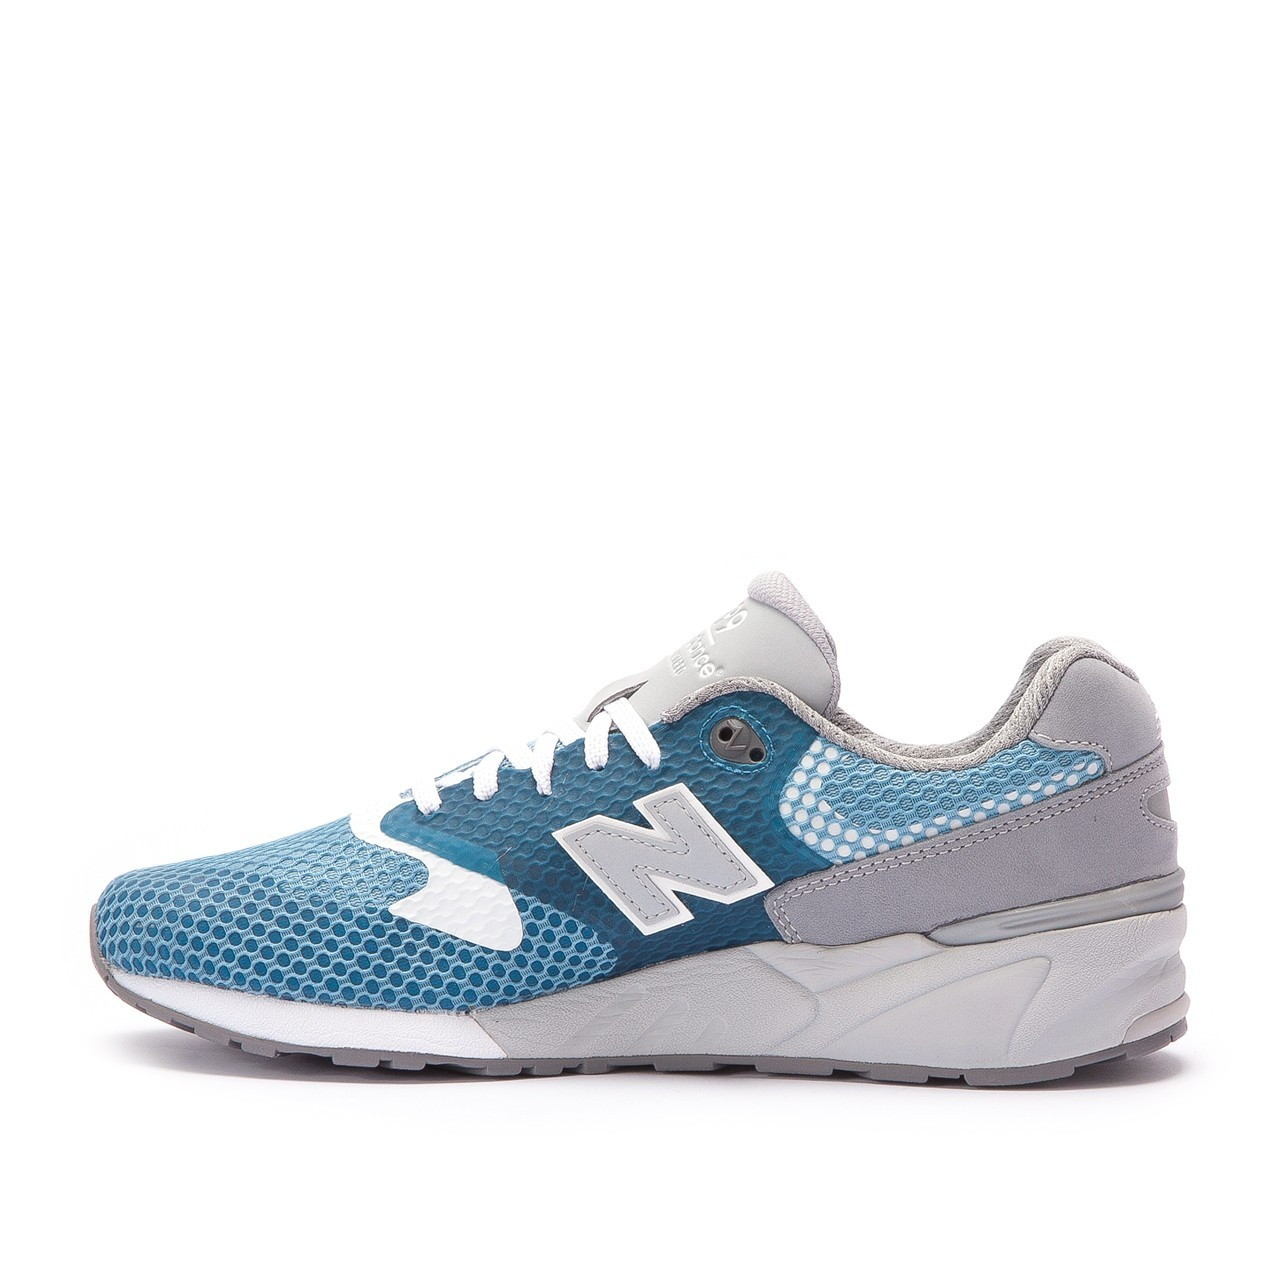 New Balance 999 Sneakers